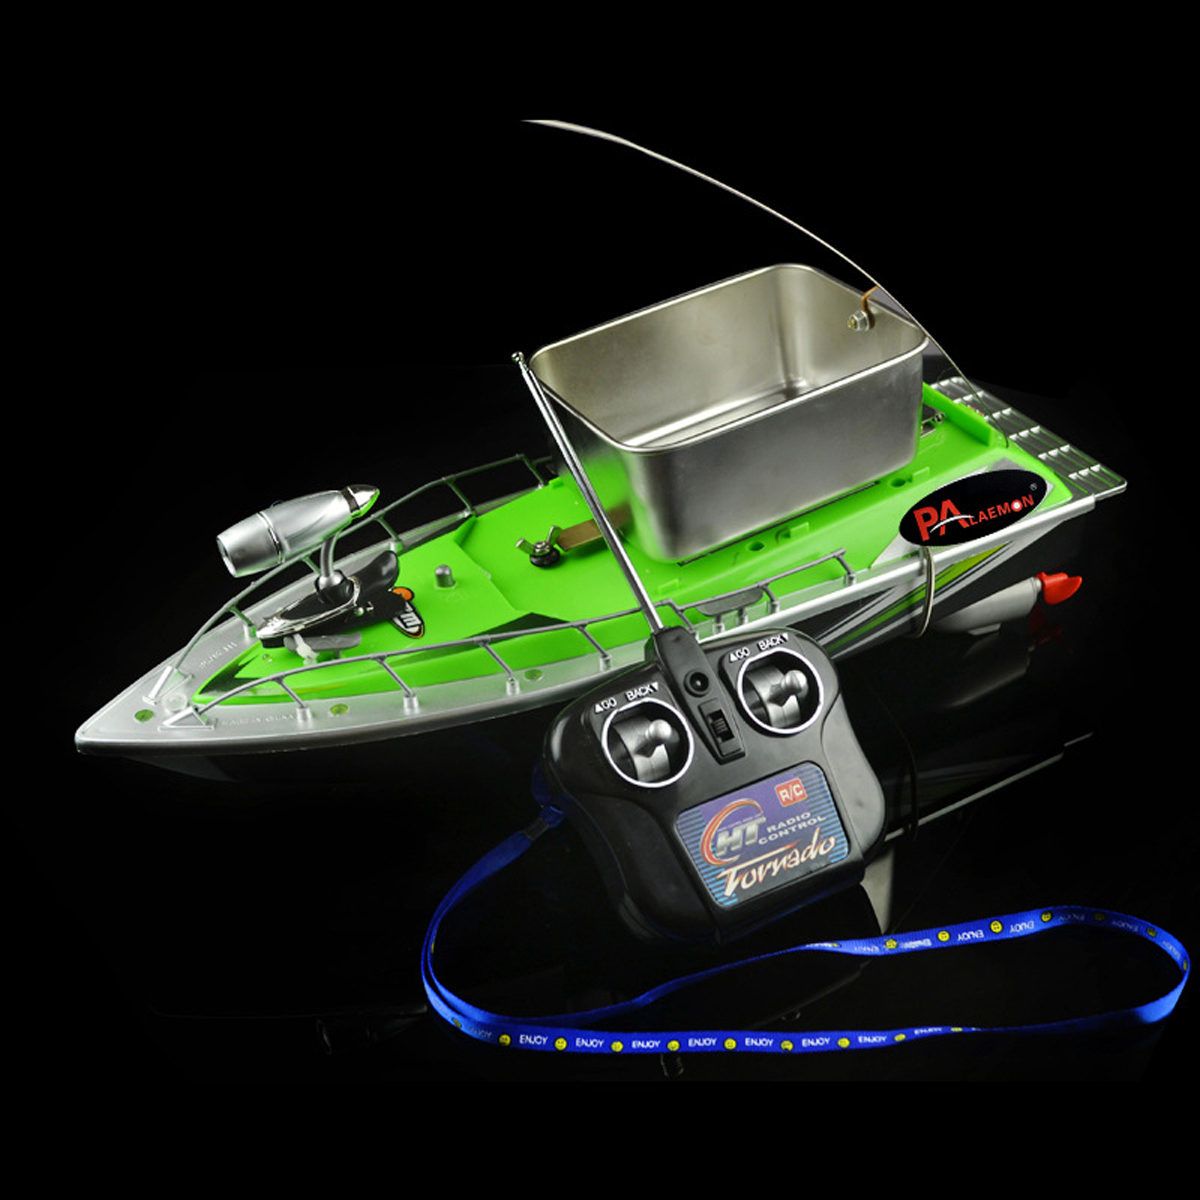 Speedboat Rc Bait Boat Carp Hull for Fishing Bait Mini Speed Boat Remote Control Boat Radio Control Light Toy Finder Model Ship image